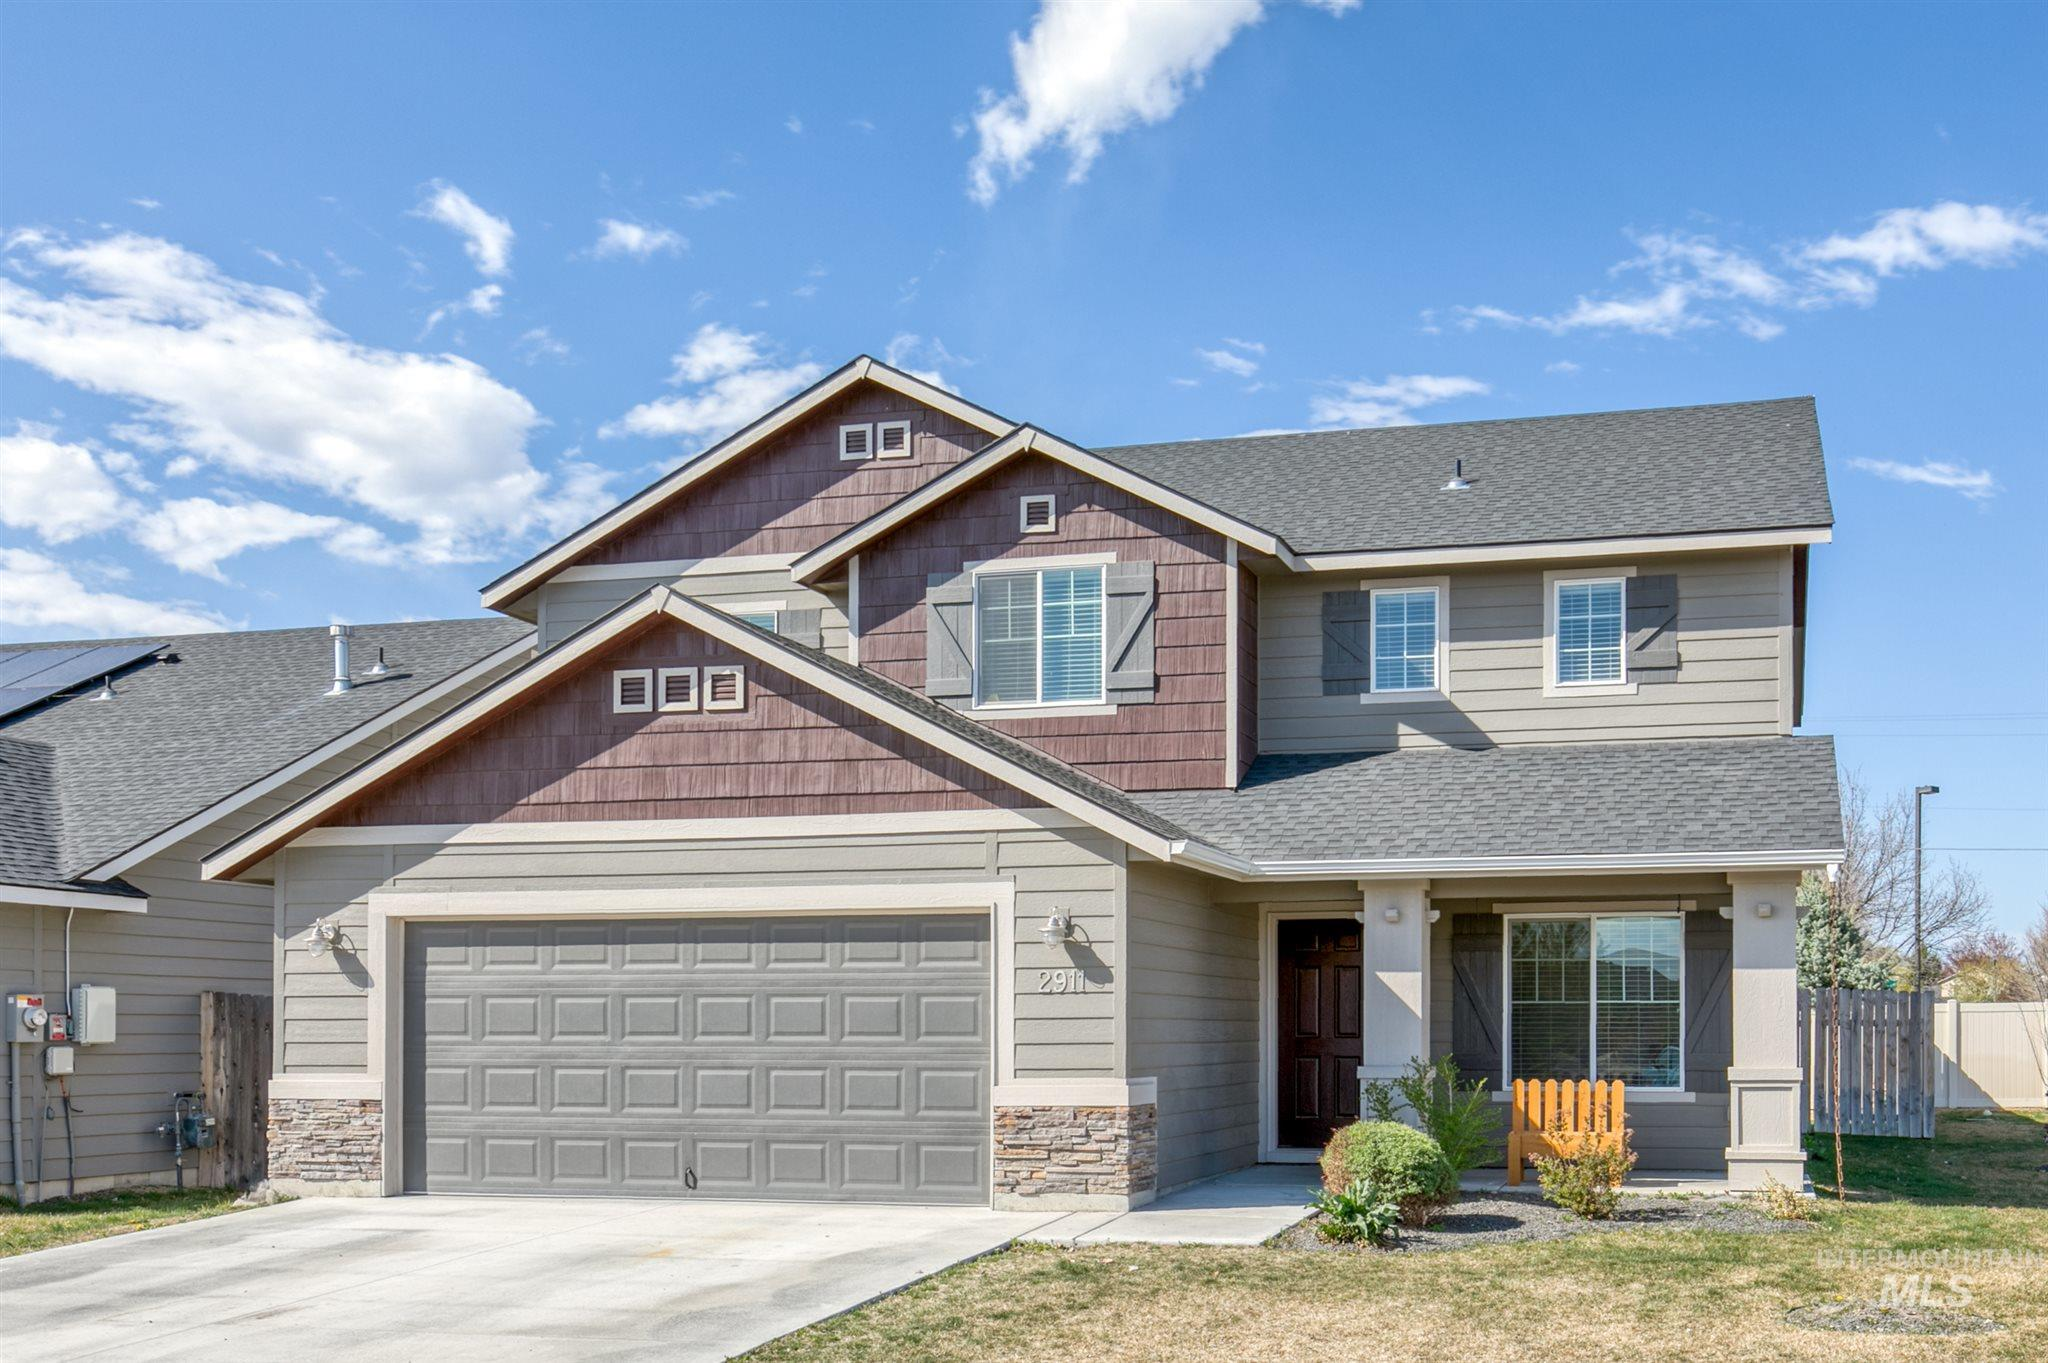 2911 W Jayton Dr Property Photo - Meridian, ID real estate listing